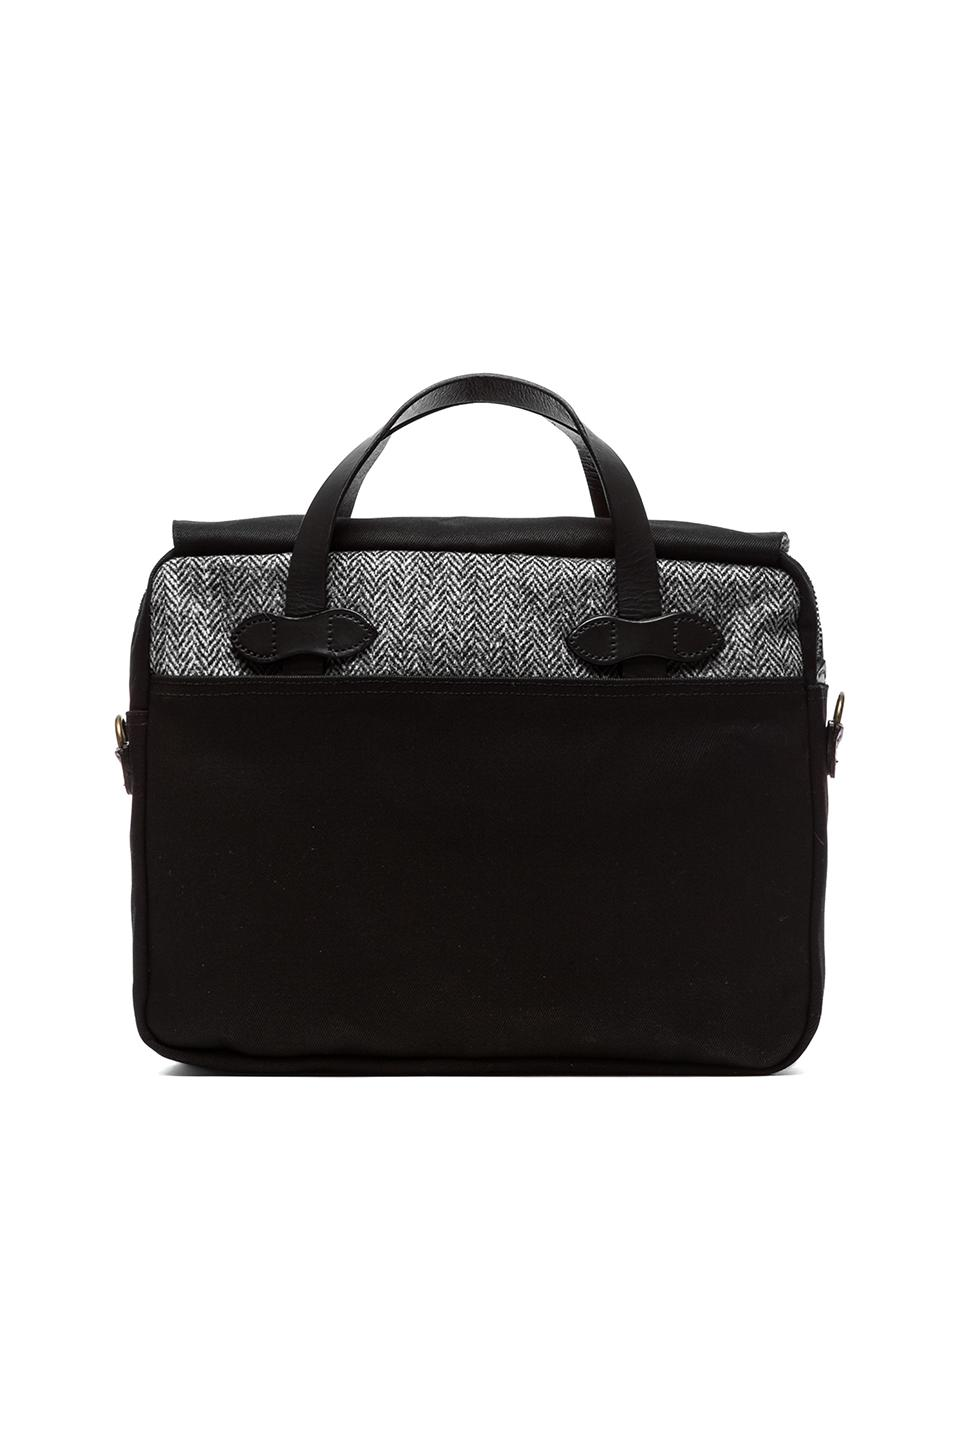 Filson Twill & Tweed Original Breifcase in Black